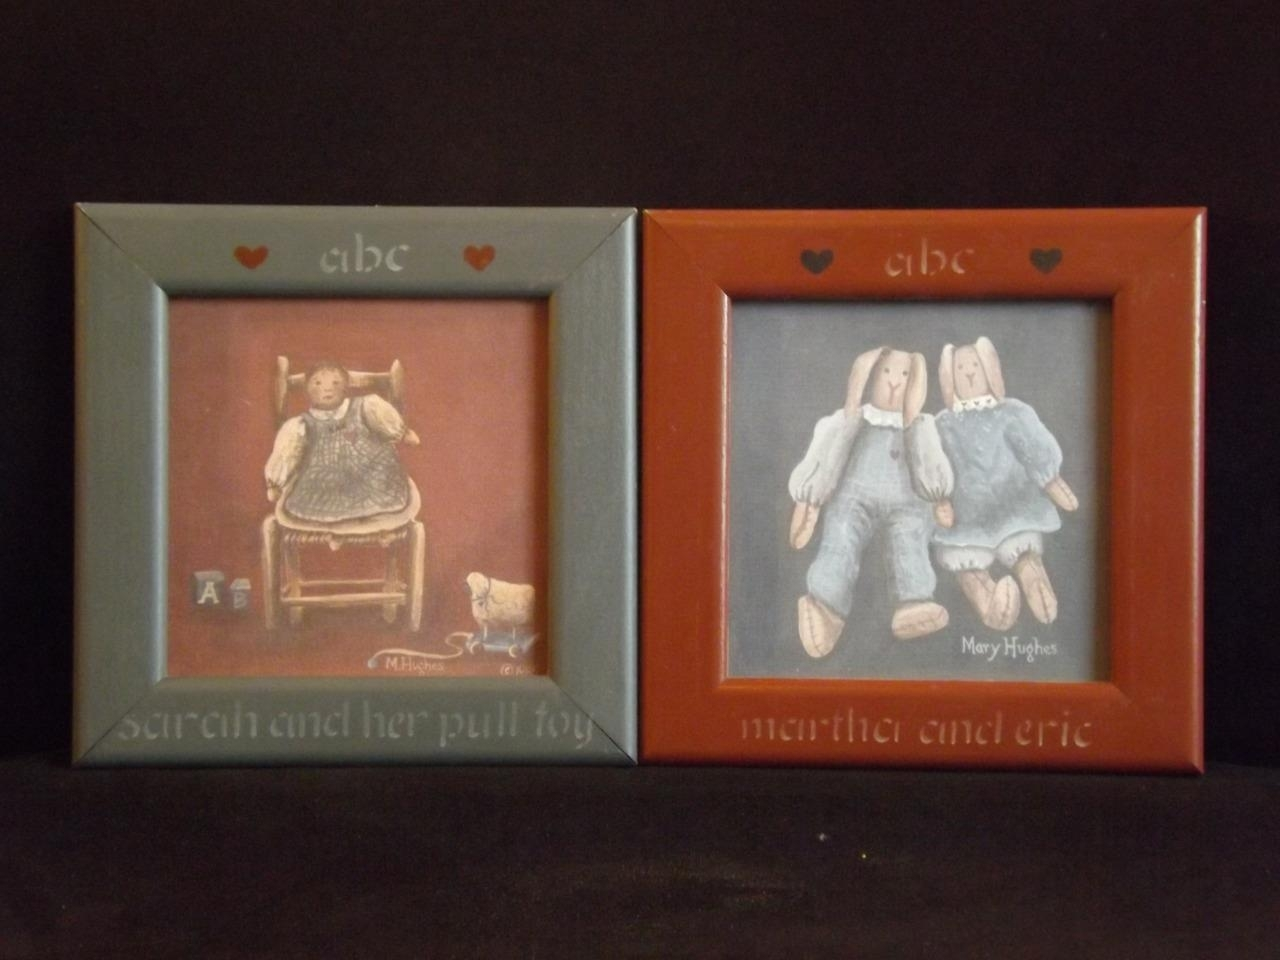 2 Mary Hughes Vintage Dolls Framed Folk Art Prints 10X10 Within Current Framed Folk Art Prints (Gallery 12 of 15)